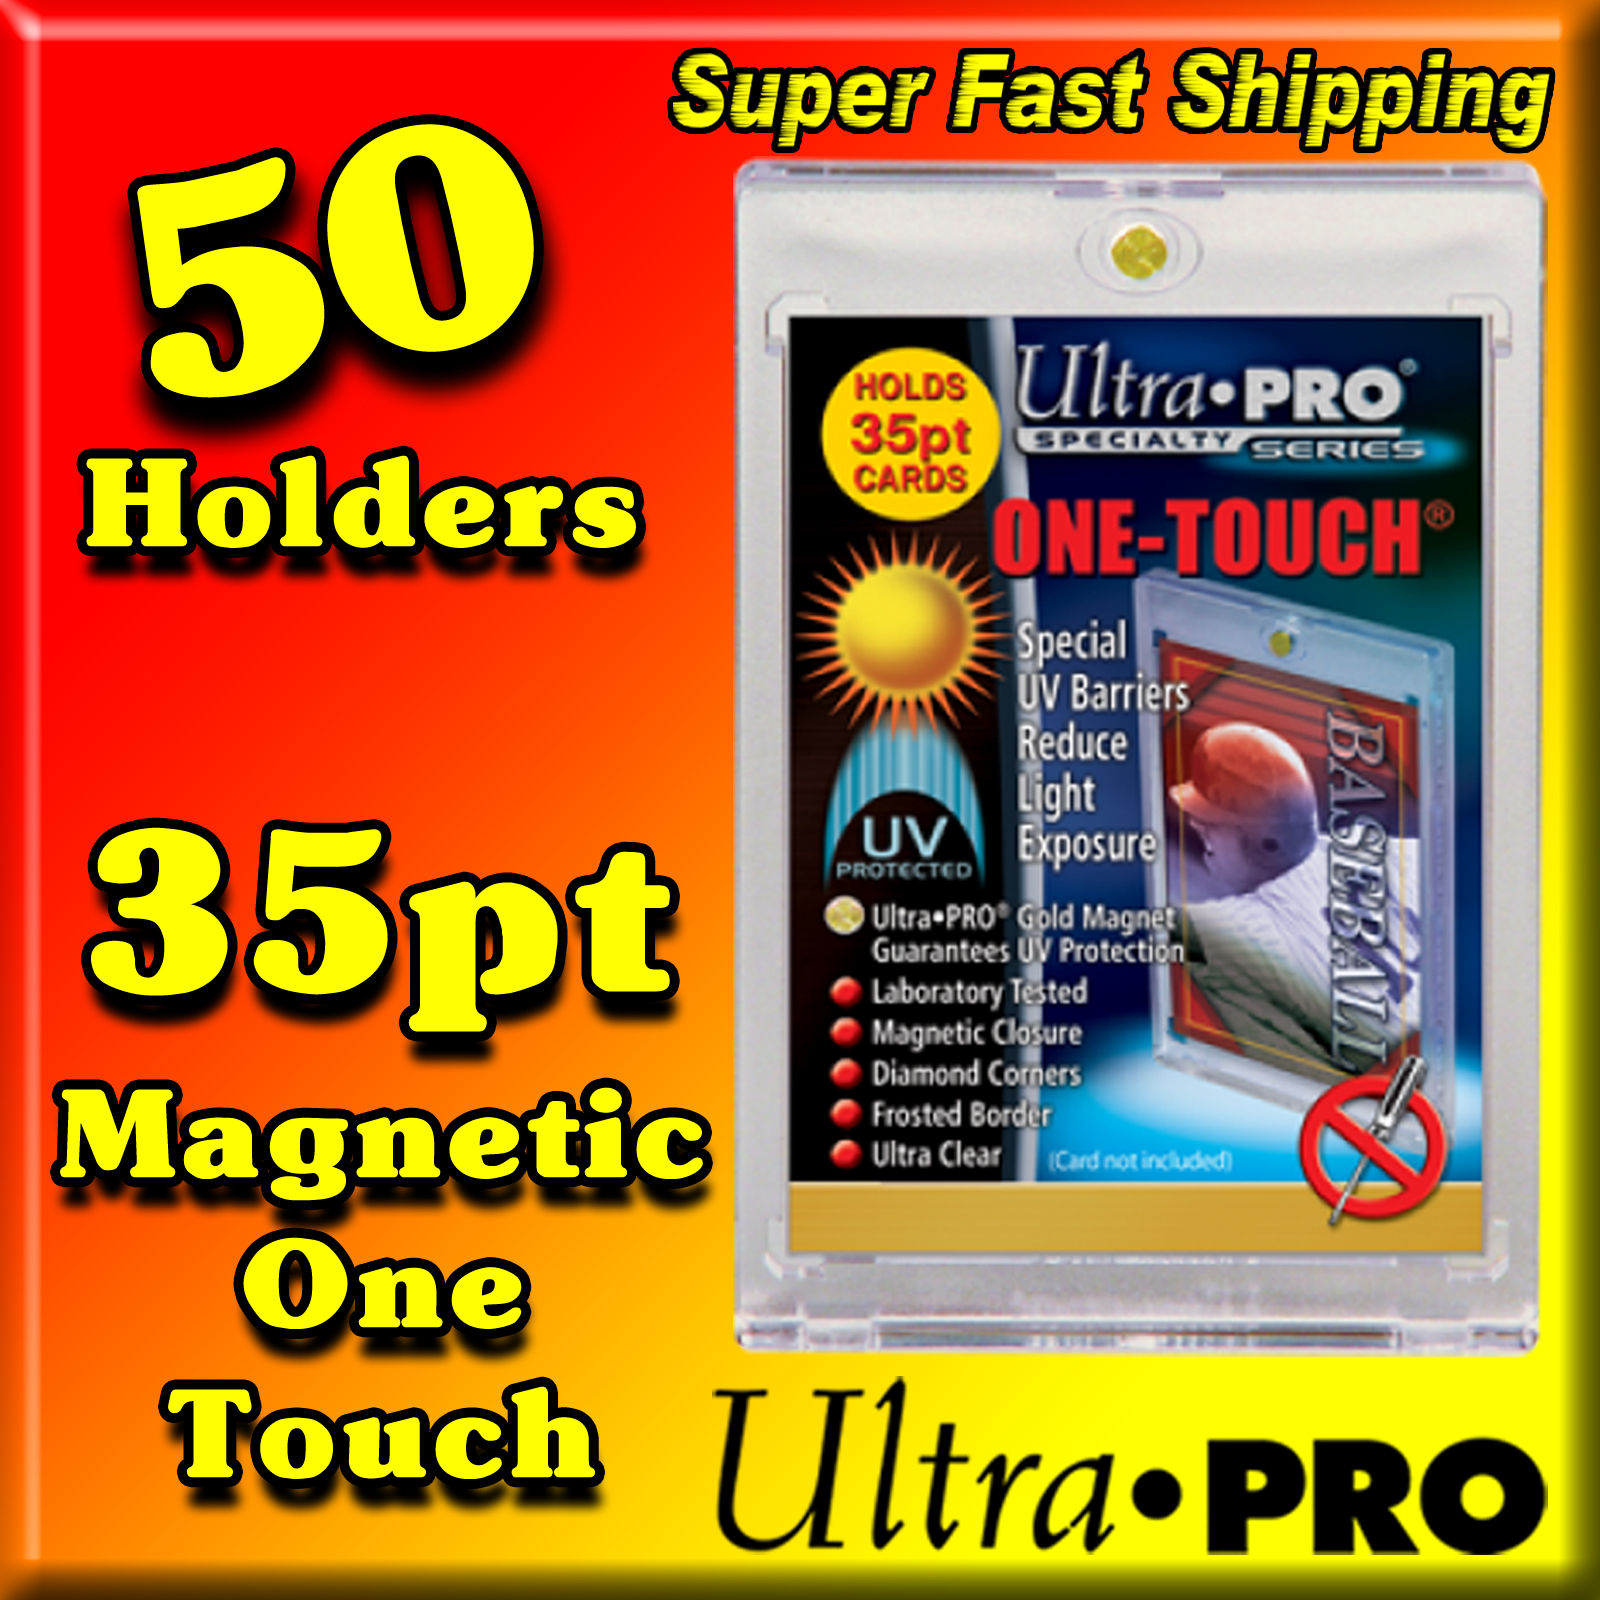 Ultra Pro Magnetic One Touch 35pt -50- USA ONLY